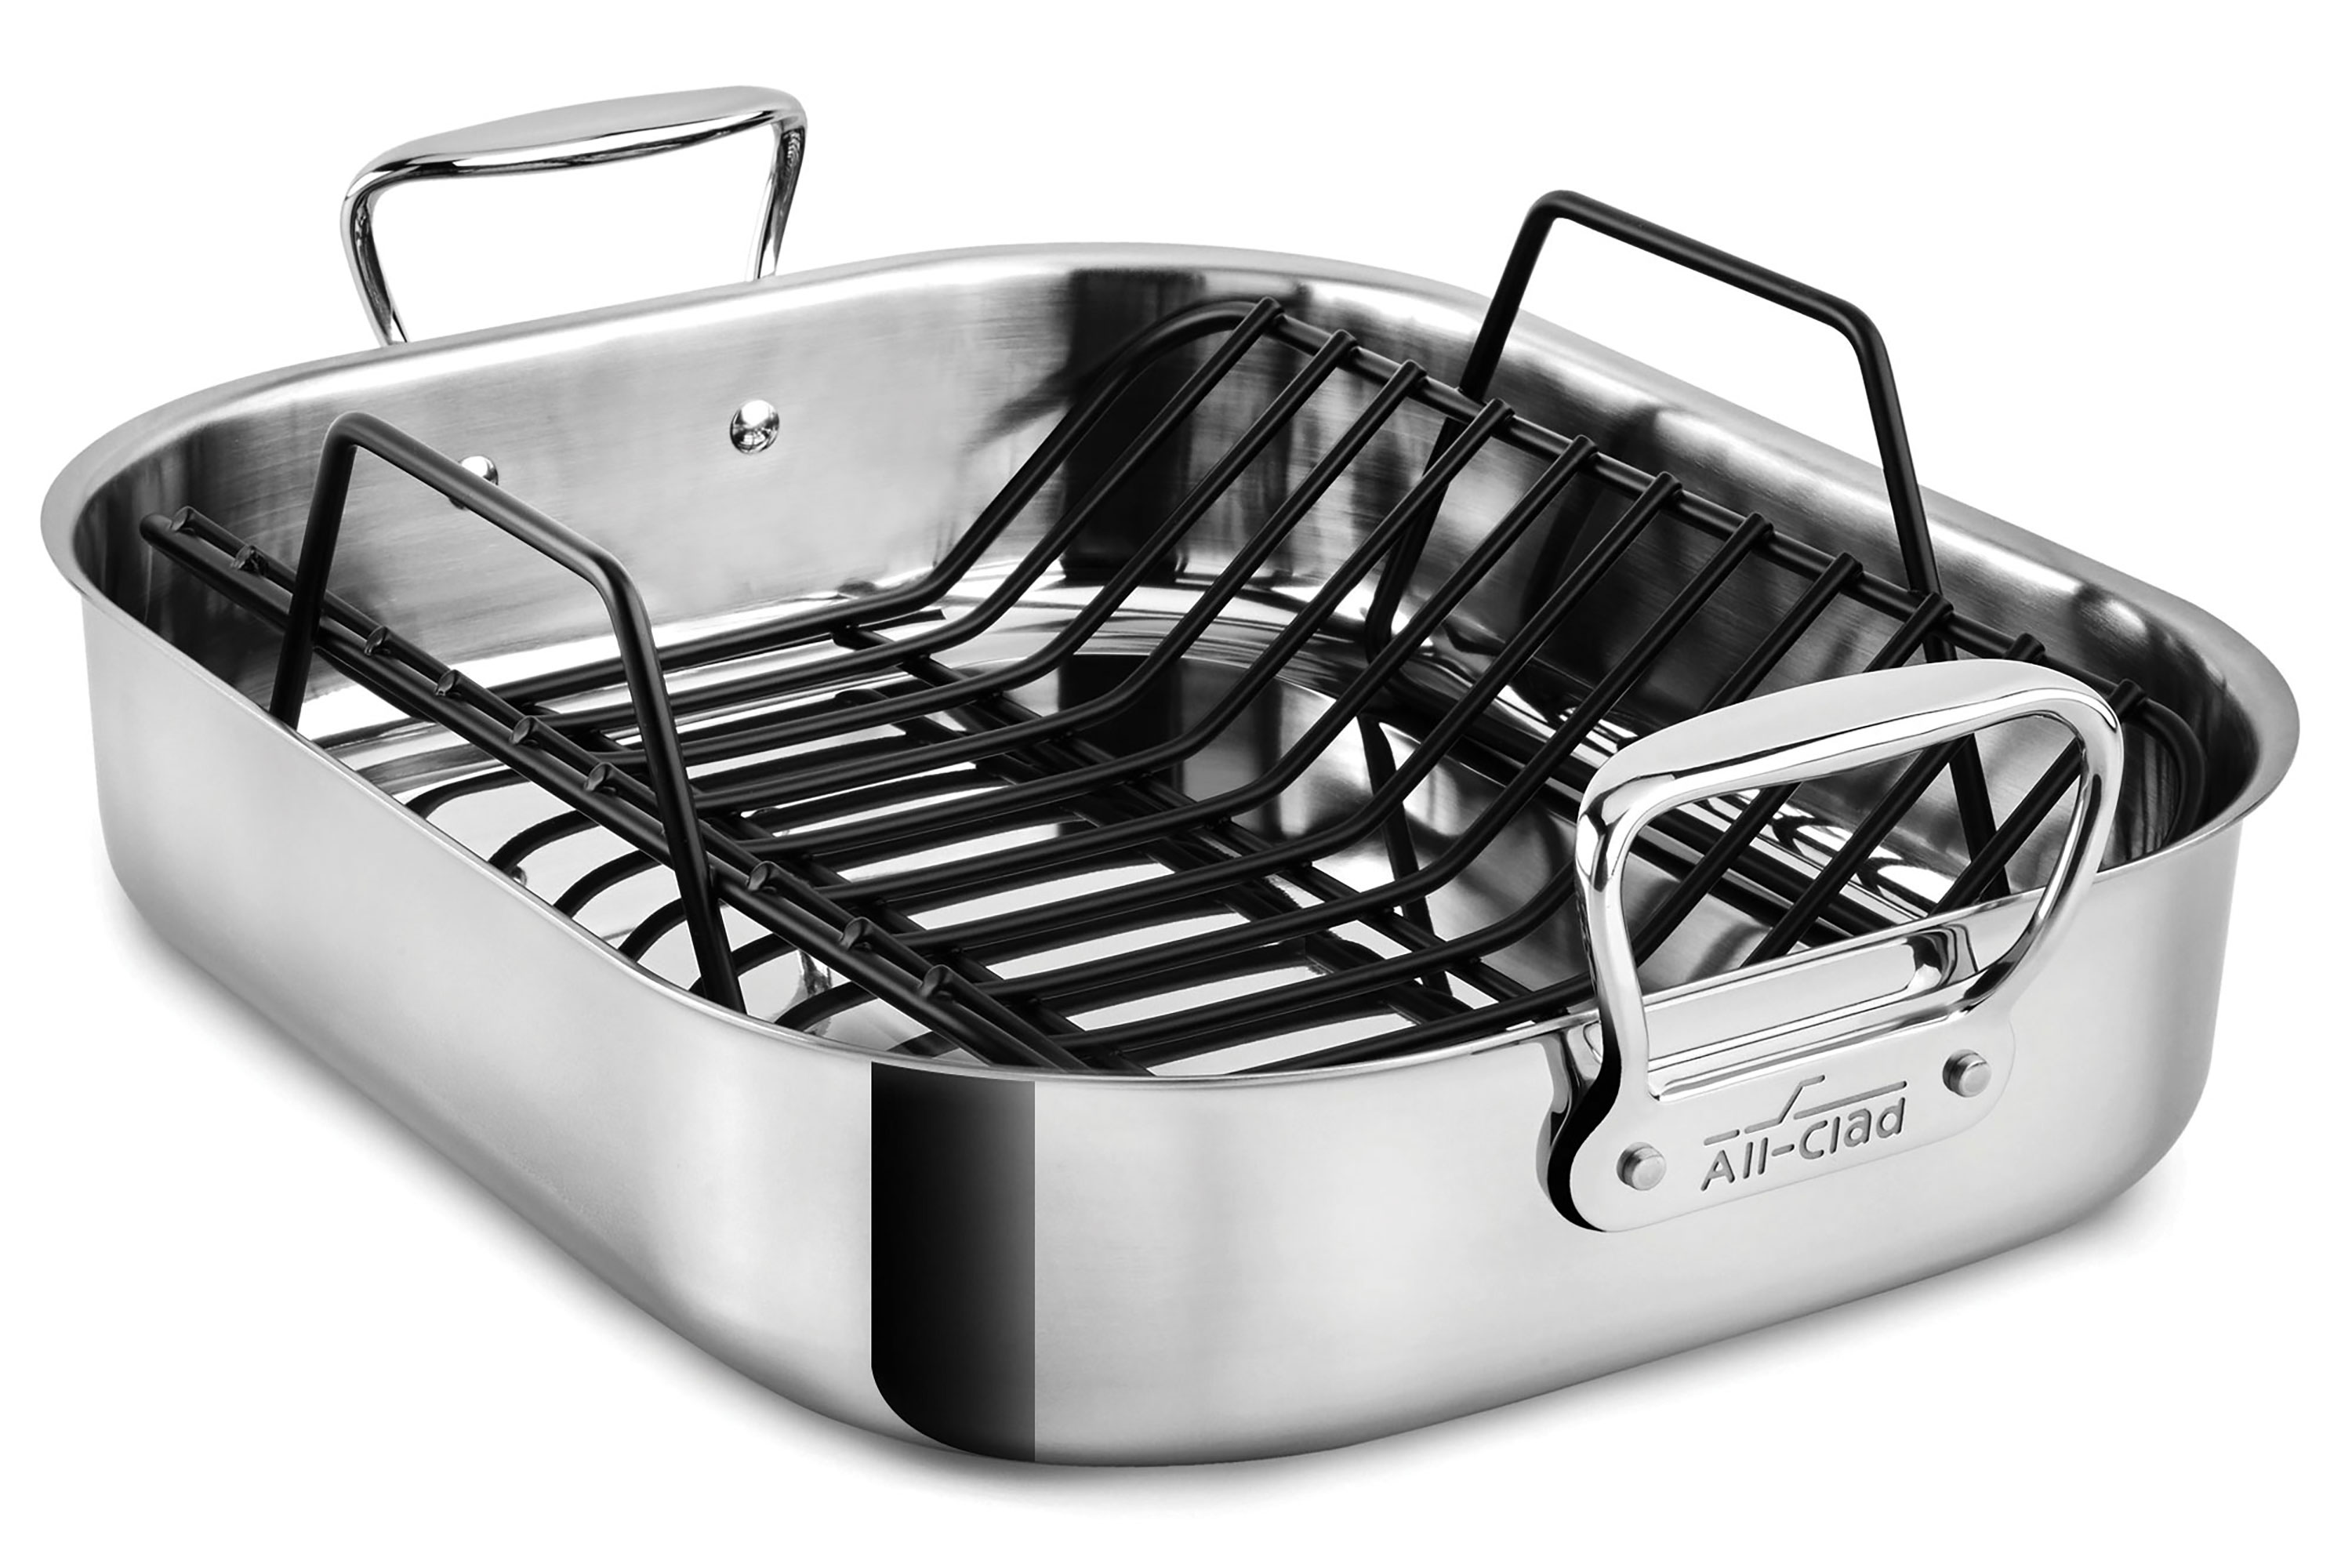 All Clad Roasting Pan Stainless Steel Large 16x13 Inch